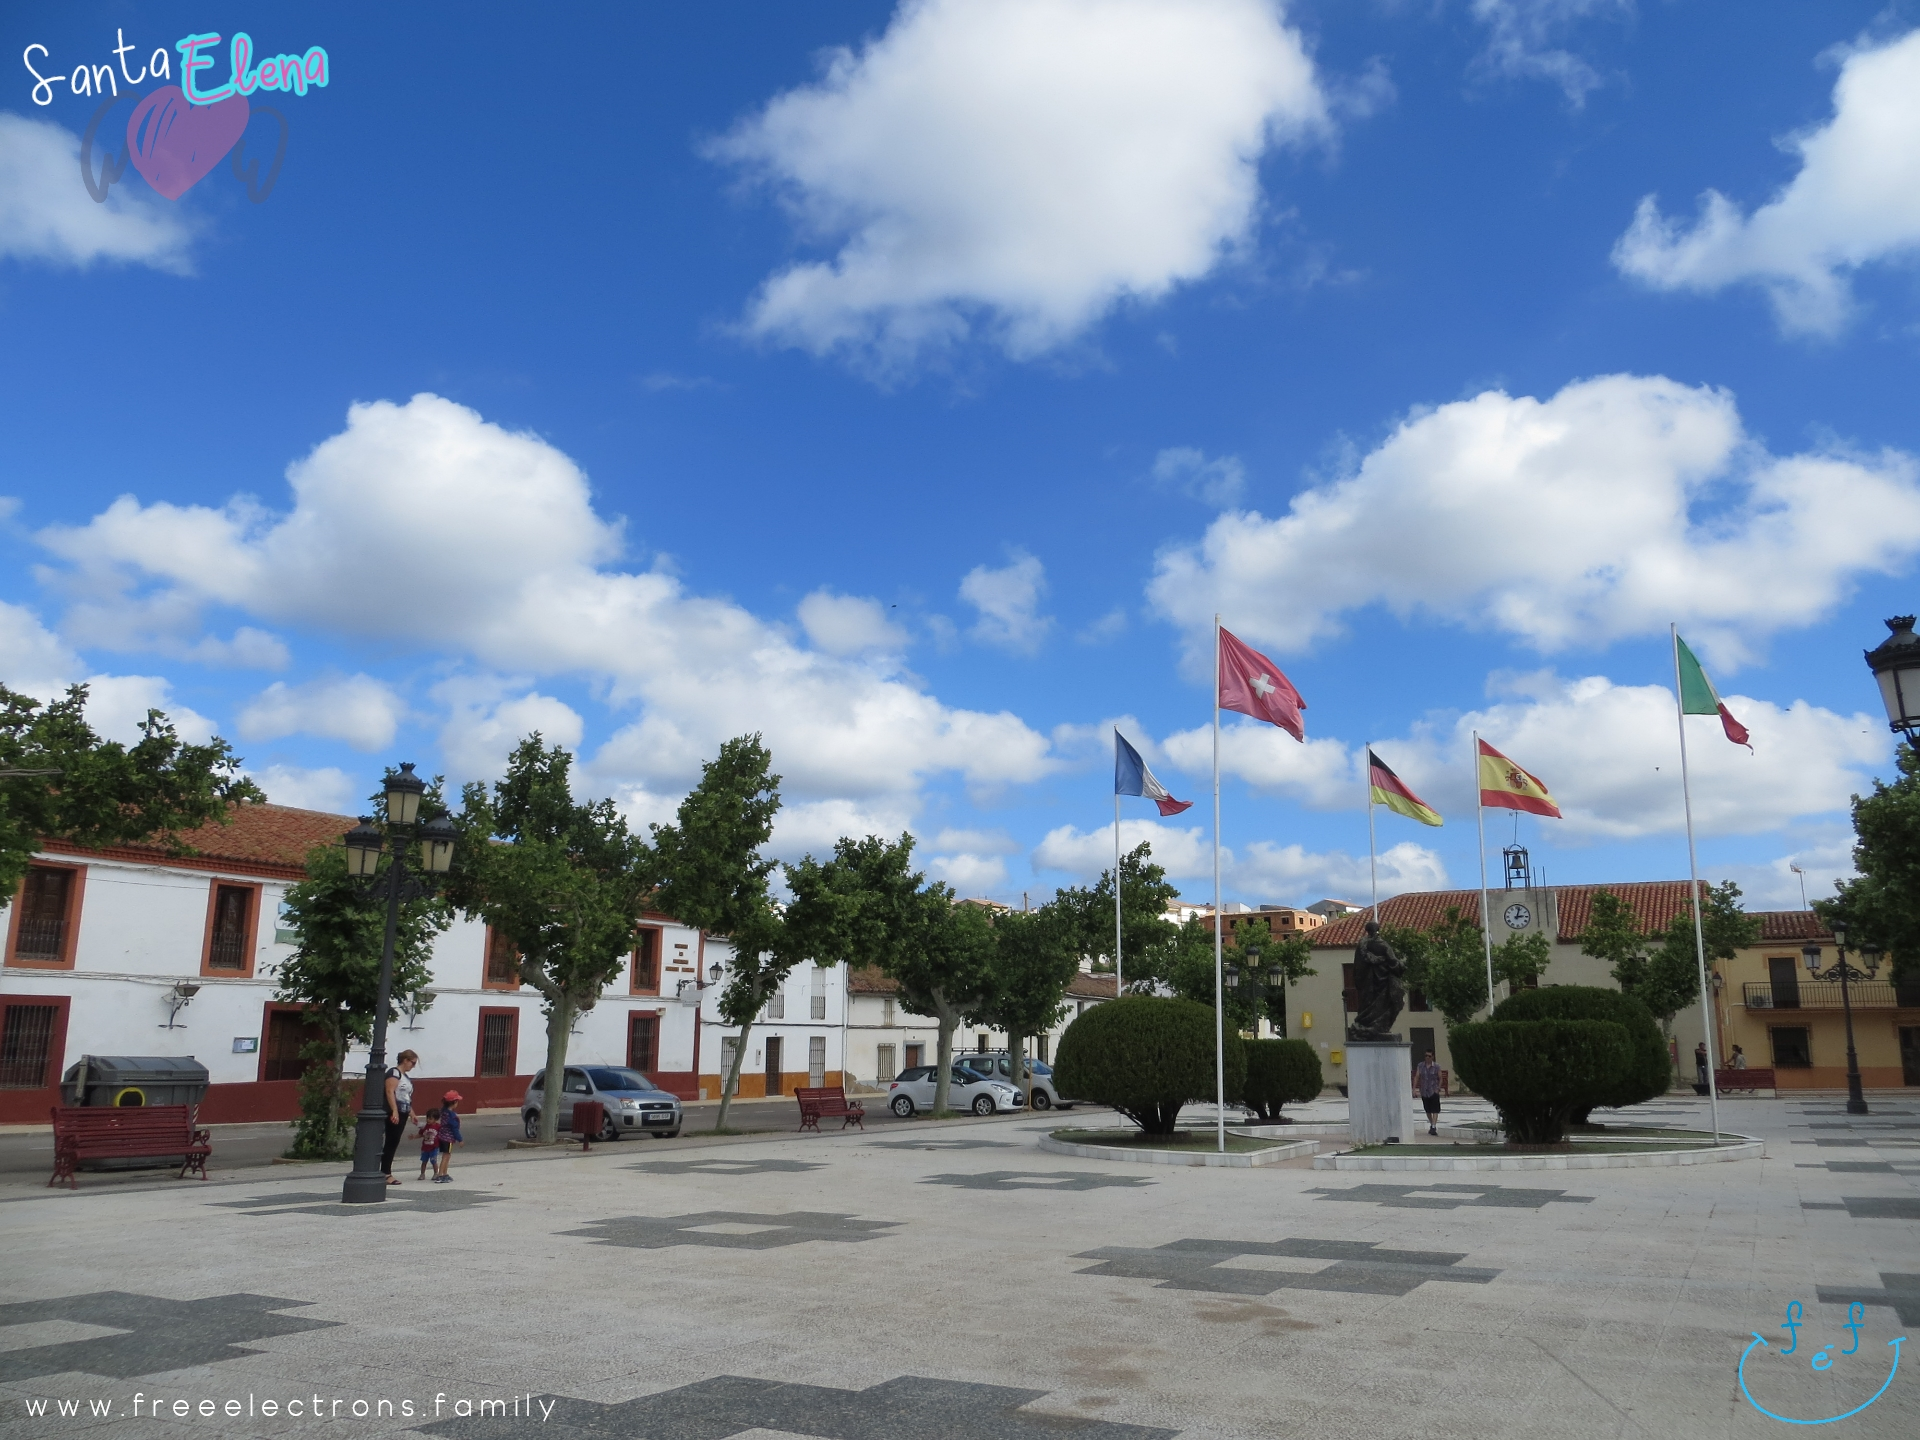 A #FreeElectrons.Family camping road trip Europe I stop in Santa Elena, Jaen, Spain.  Take a peaceful stroll in the main square with the Church of the Empress Santa Elena and a statue of King Carlos III.